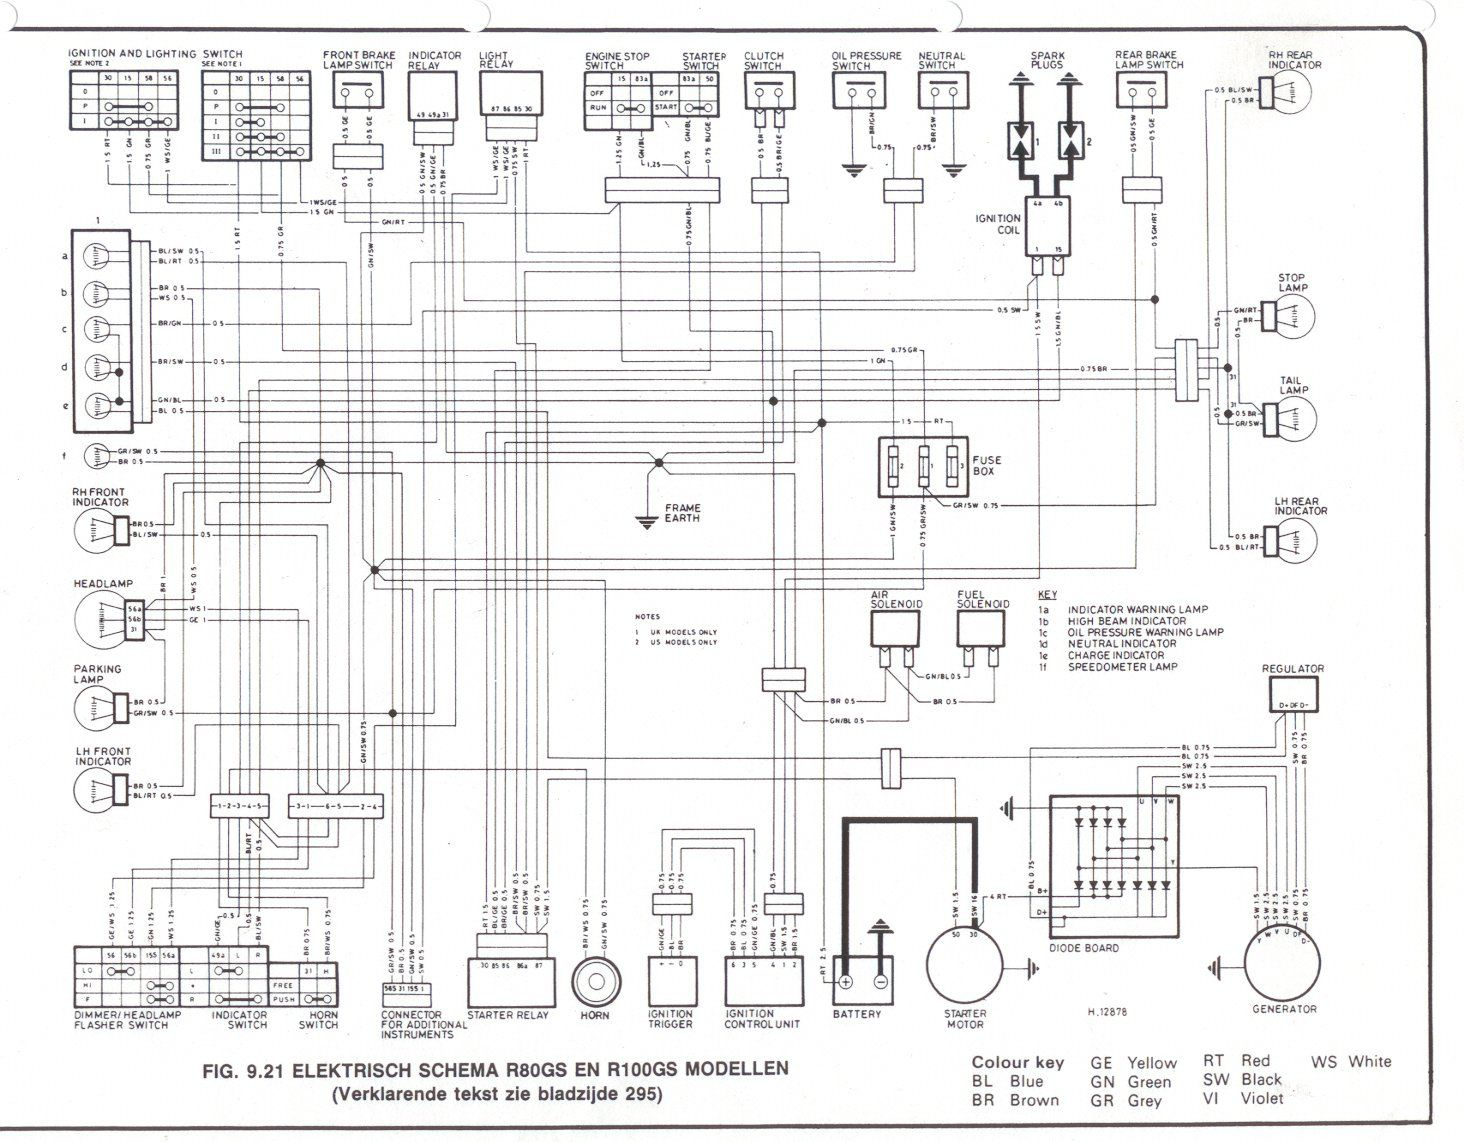 Bmw r1150r electrical wiring diagram #3 Electrical Wiring Diagram, Bmw  Cars, Crossword,